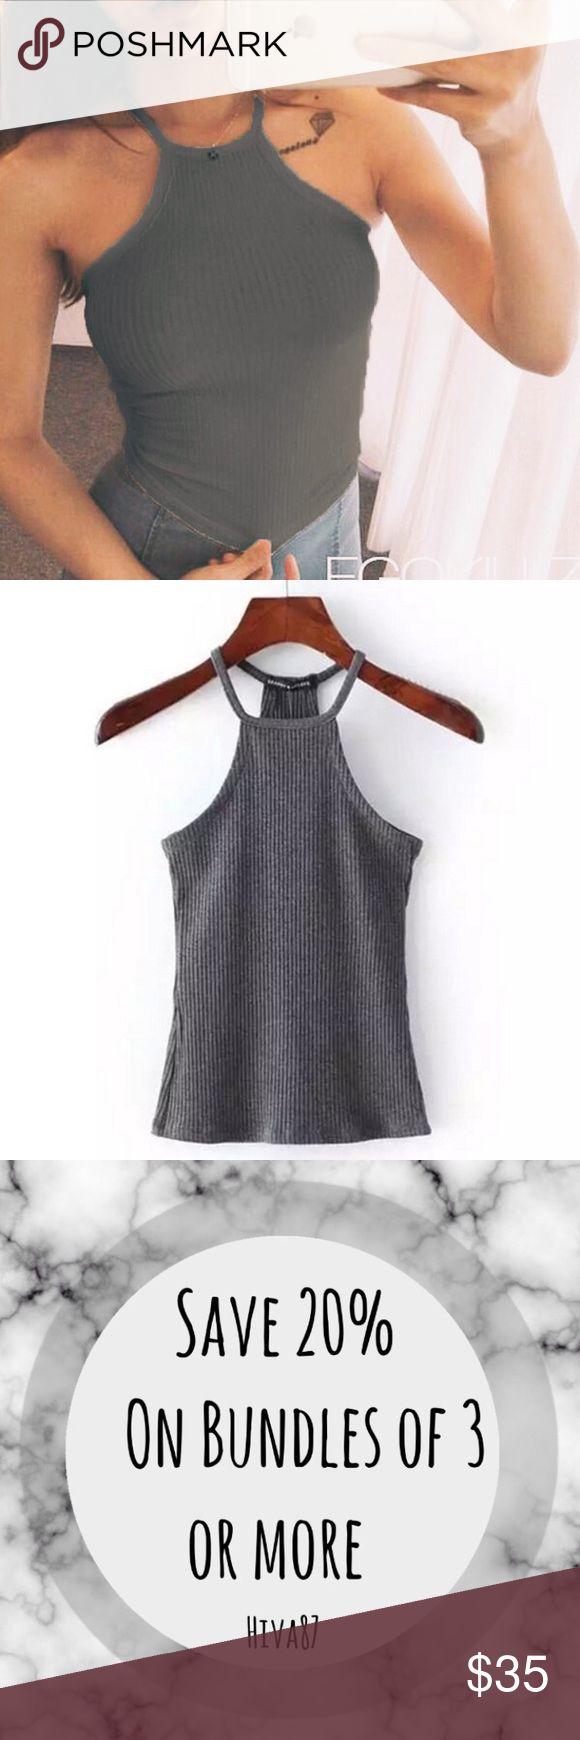 🌹COMING SOON🌹Dark Grey Ribbed Halter Top 🌹NOT AVAILABLE YET! anyone who likes will be notified once available for sale!!🌹 Brandy Melville Tops Tank Tops